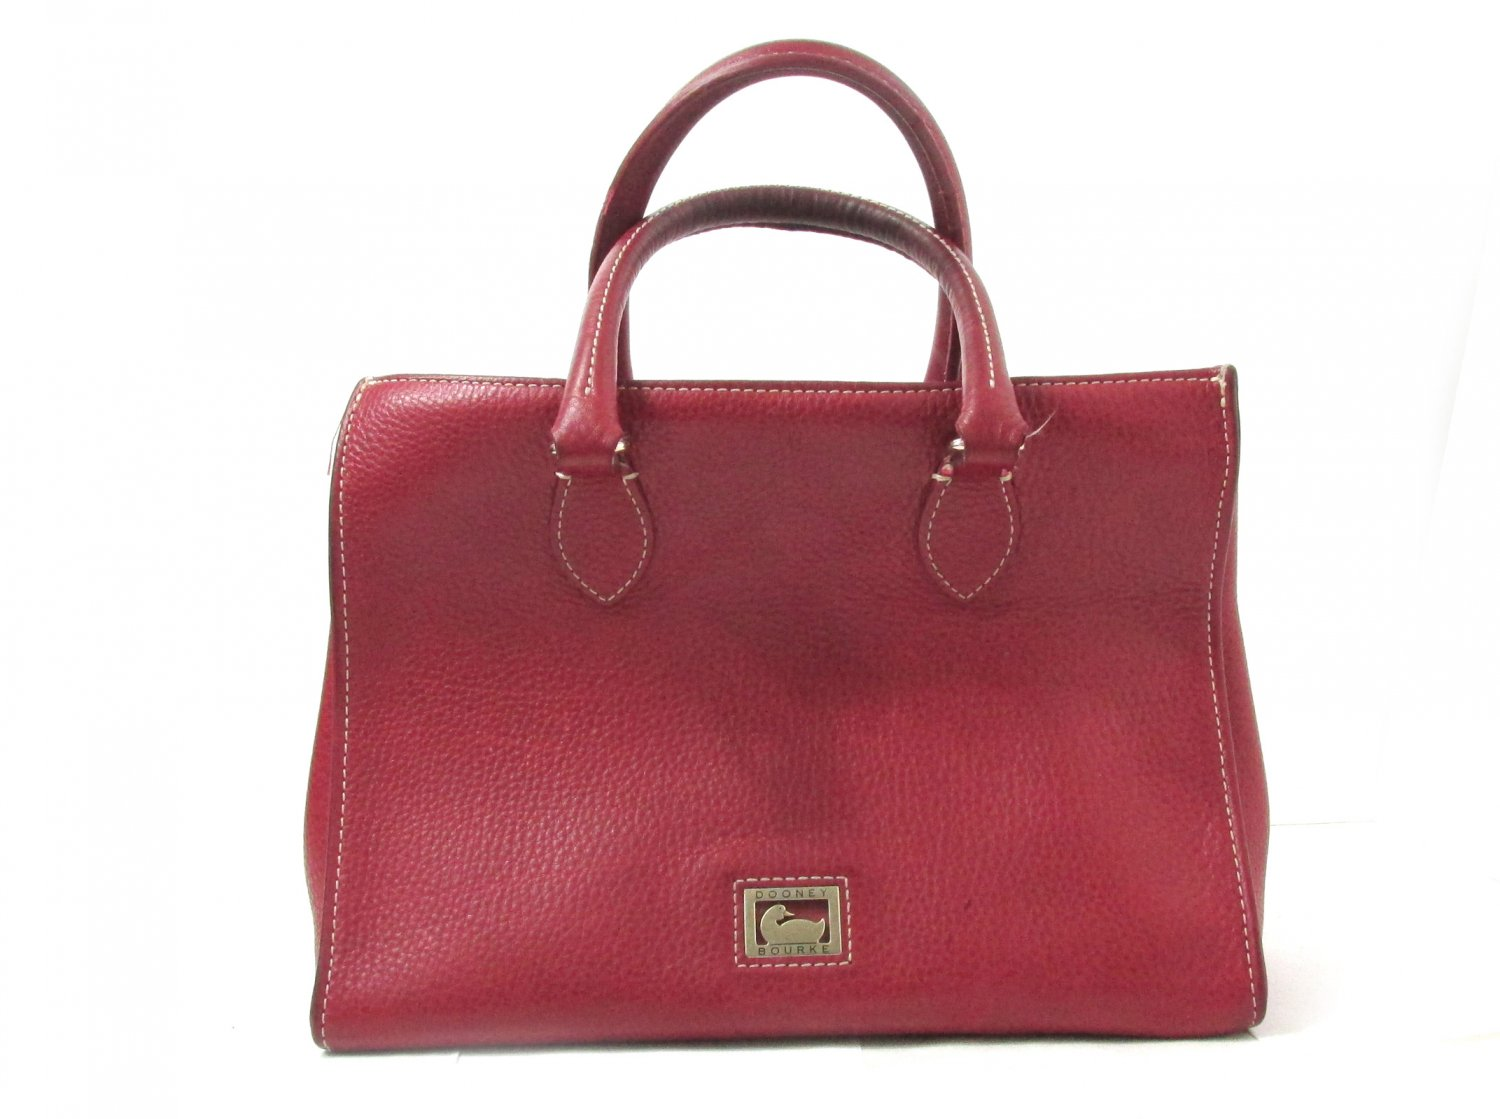 Dooney Bourke Red Pebble Leather Handbag Used